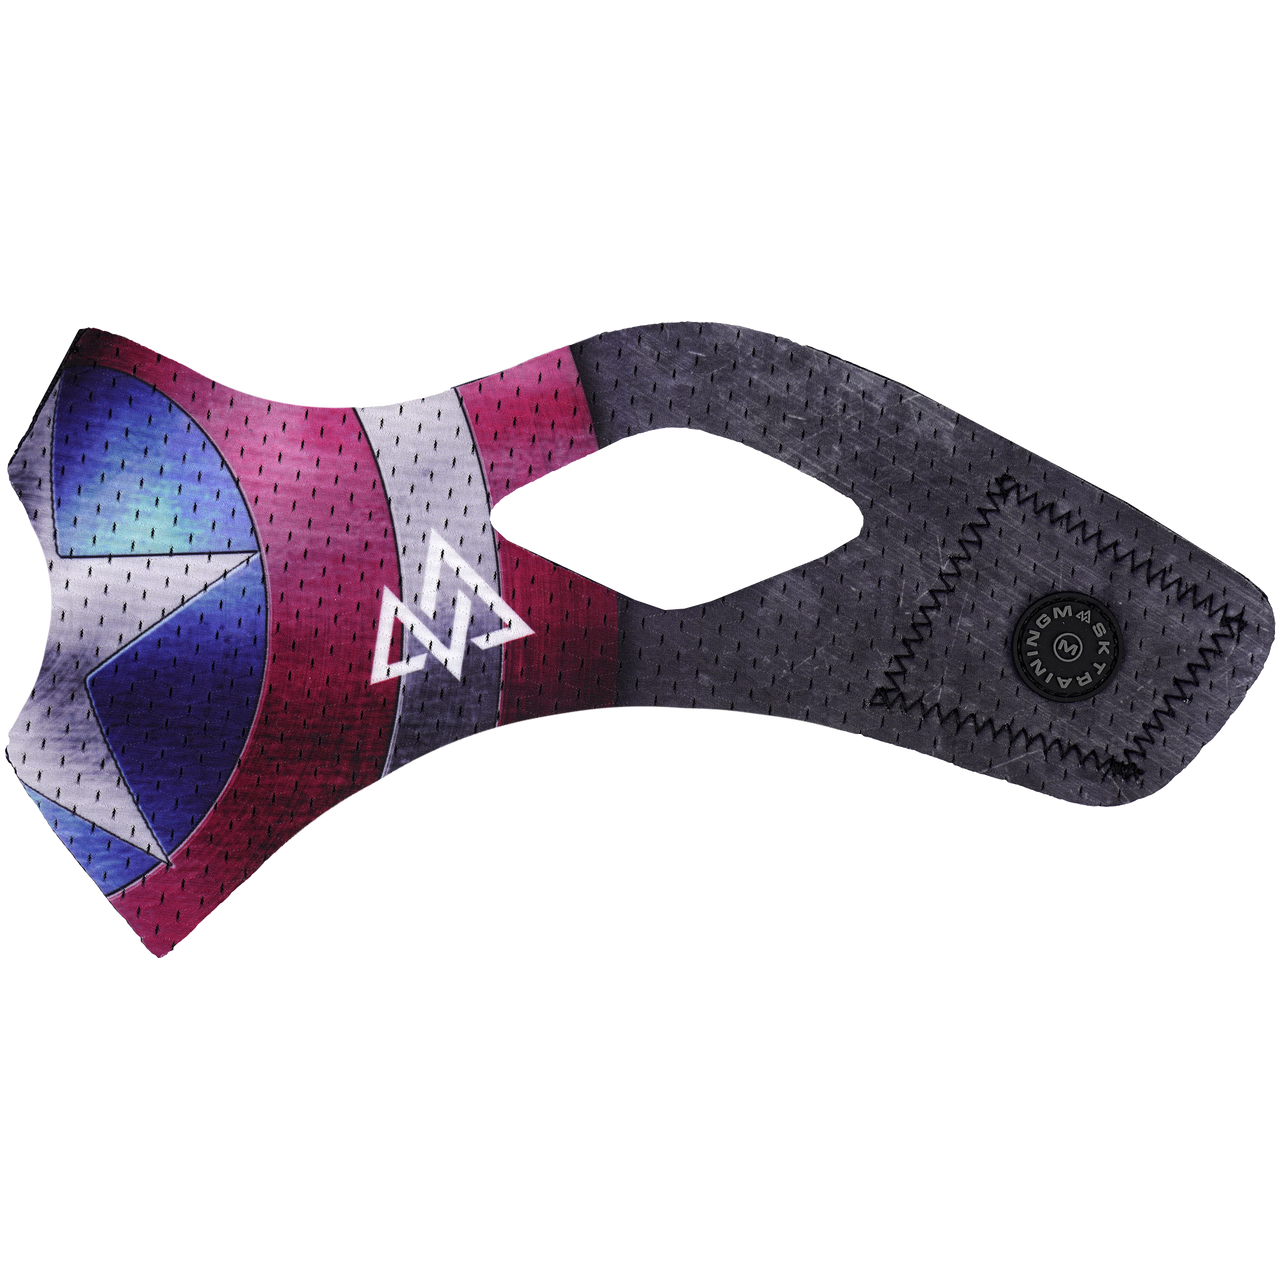 Training Mask 3.0 Merica Sleeve